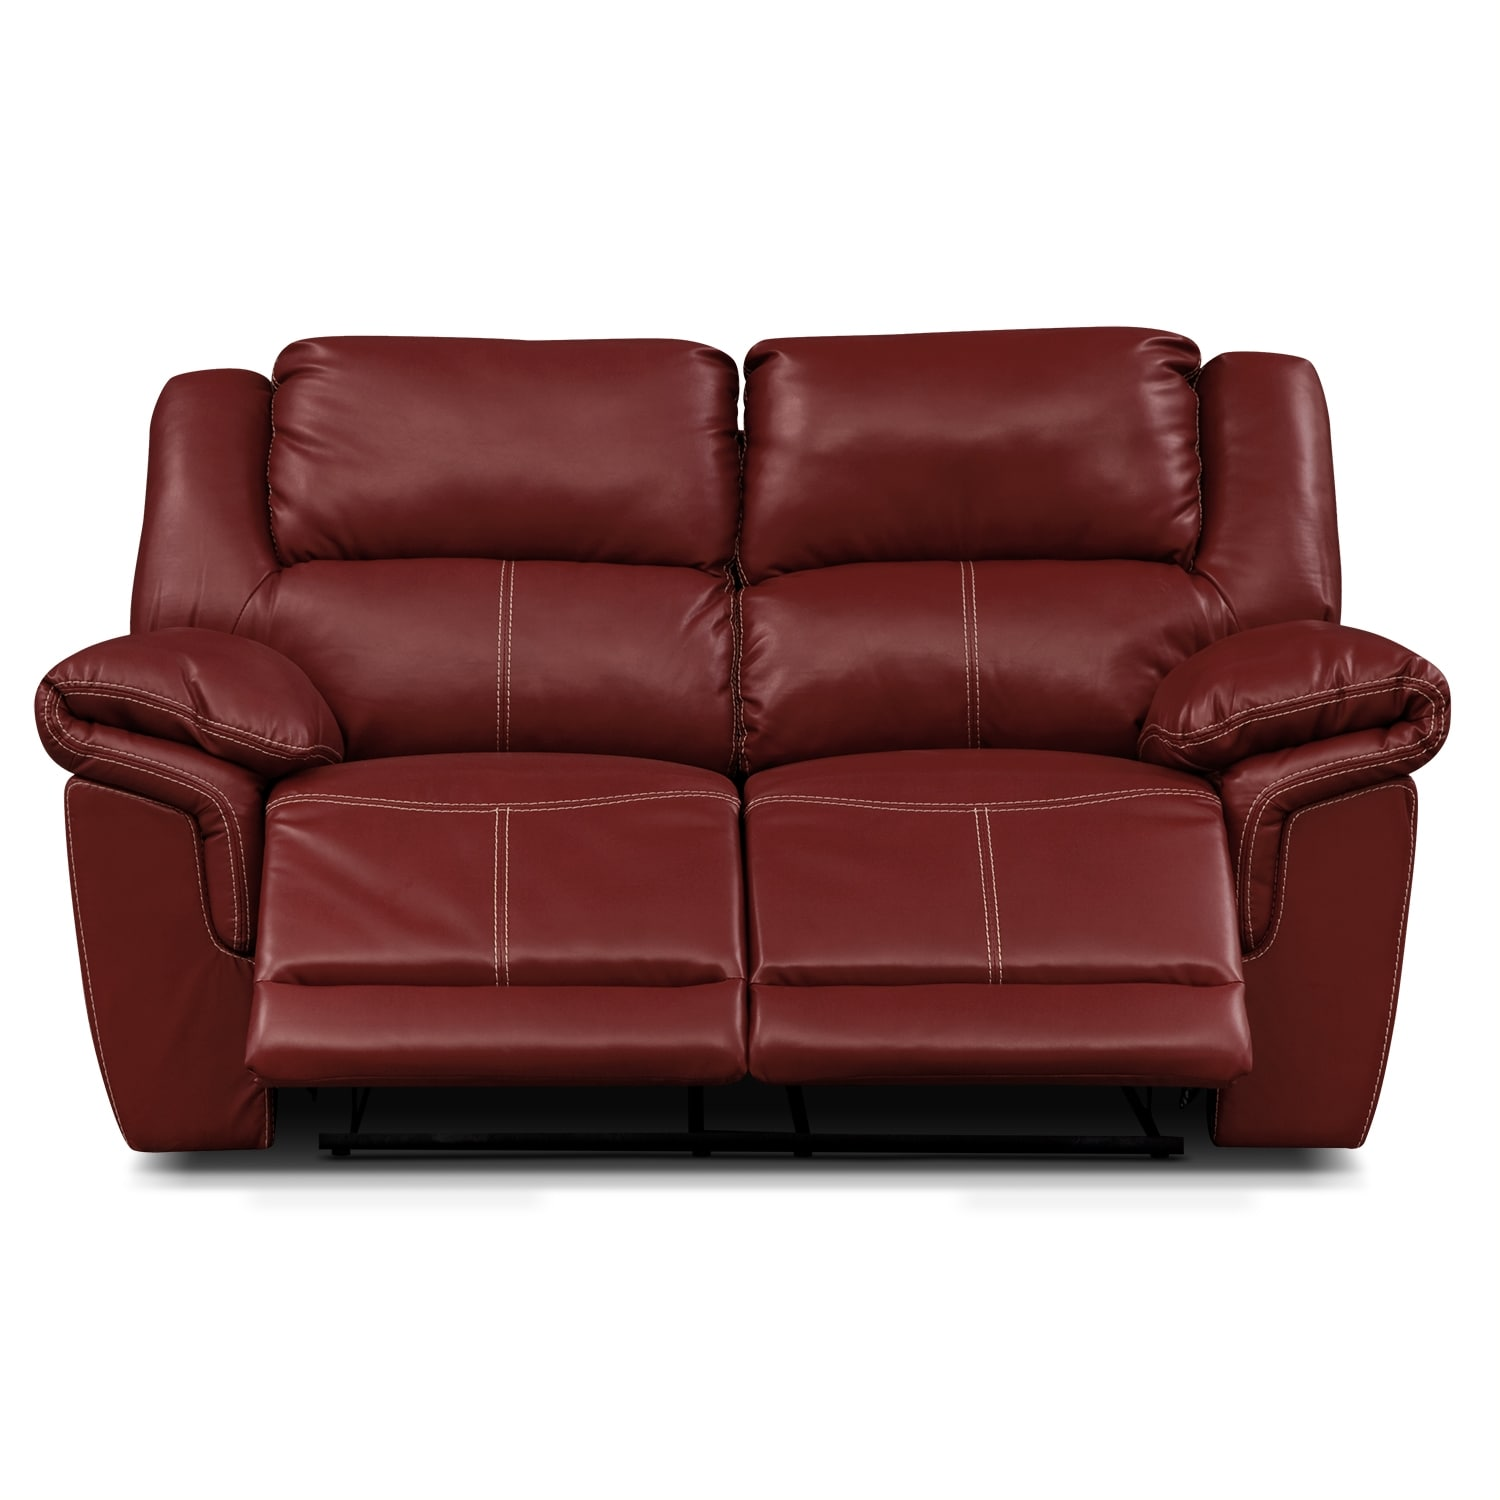 20 leather reclining loveseat sale double baycliffe brown power reclining sofa sofas Reclining loveseat sale